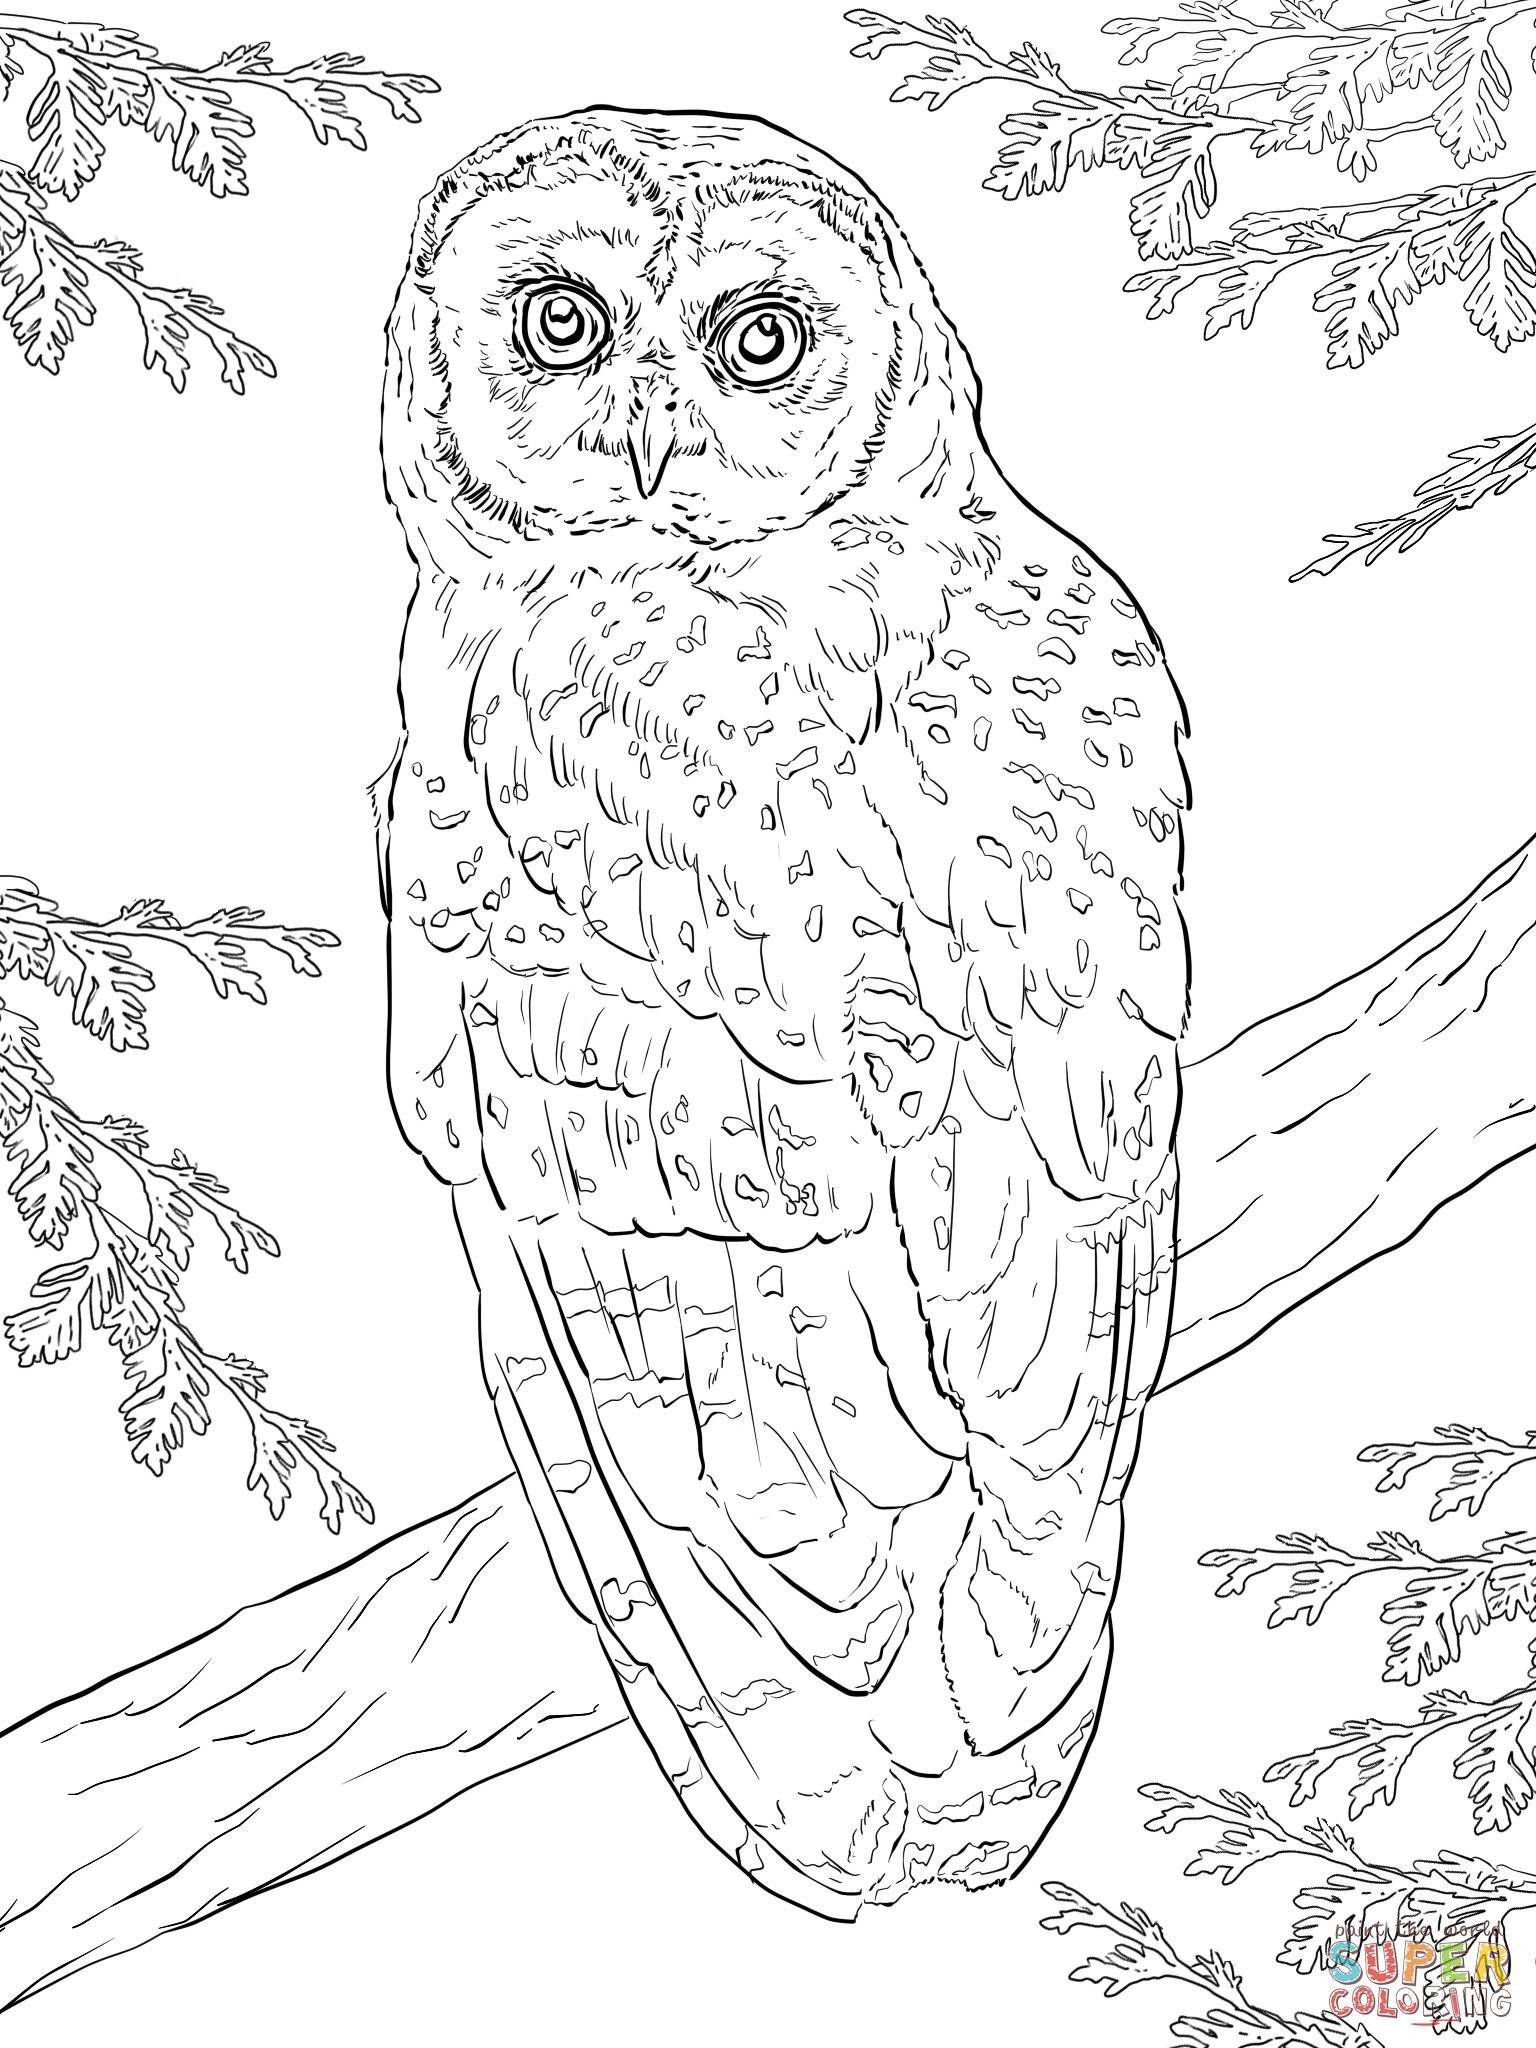 Northern Spotted Owl Coloring Page | Free Printable Coloring